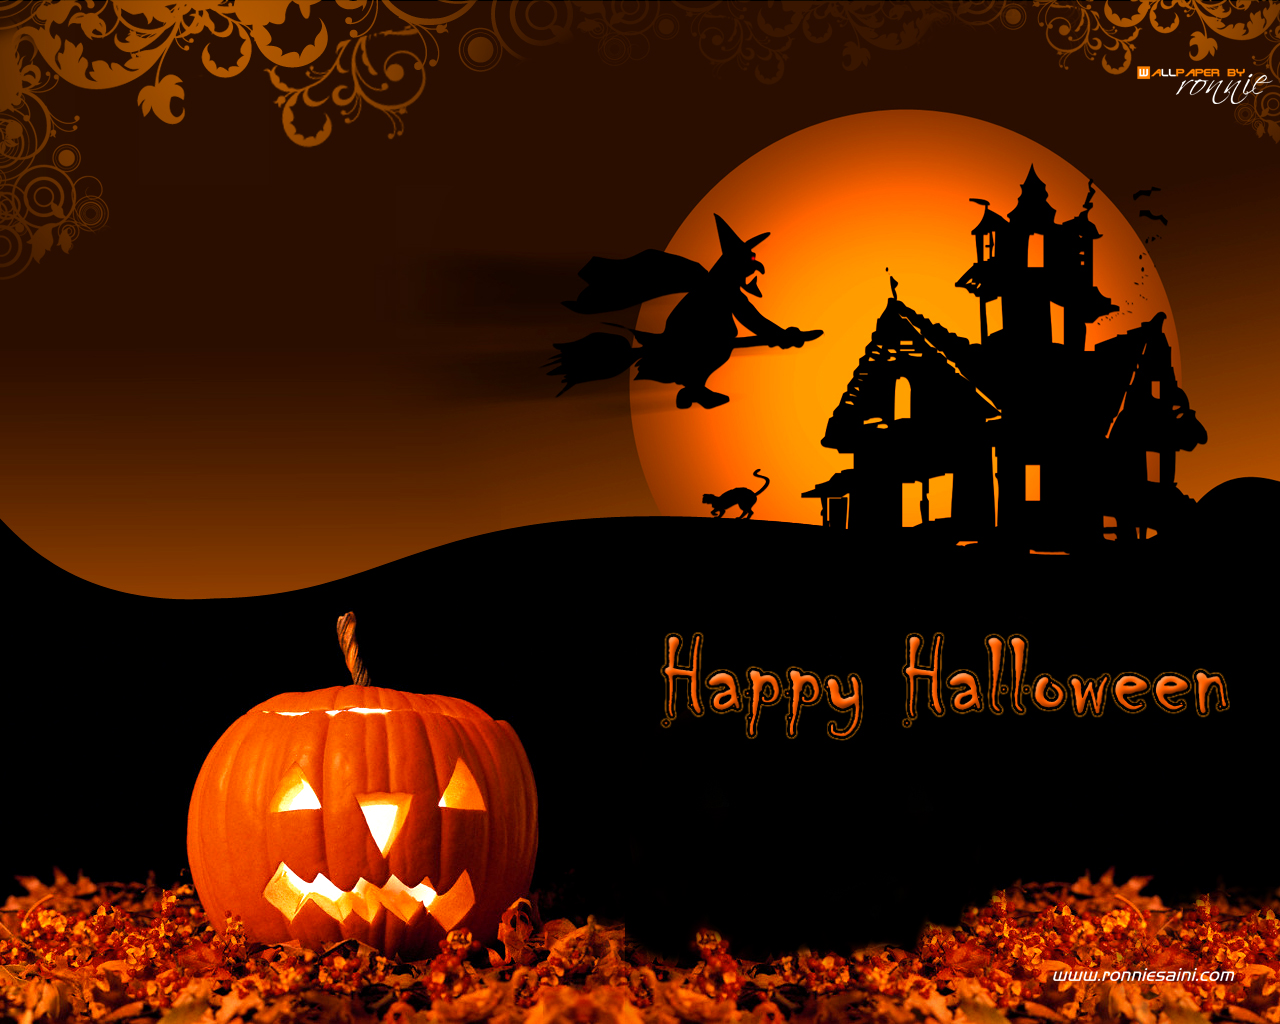 Halloween-HD-Wallpapers-Halloween-2012-HD-Desktop-Pictures-Wallpapers-Backgrounds-9